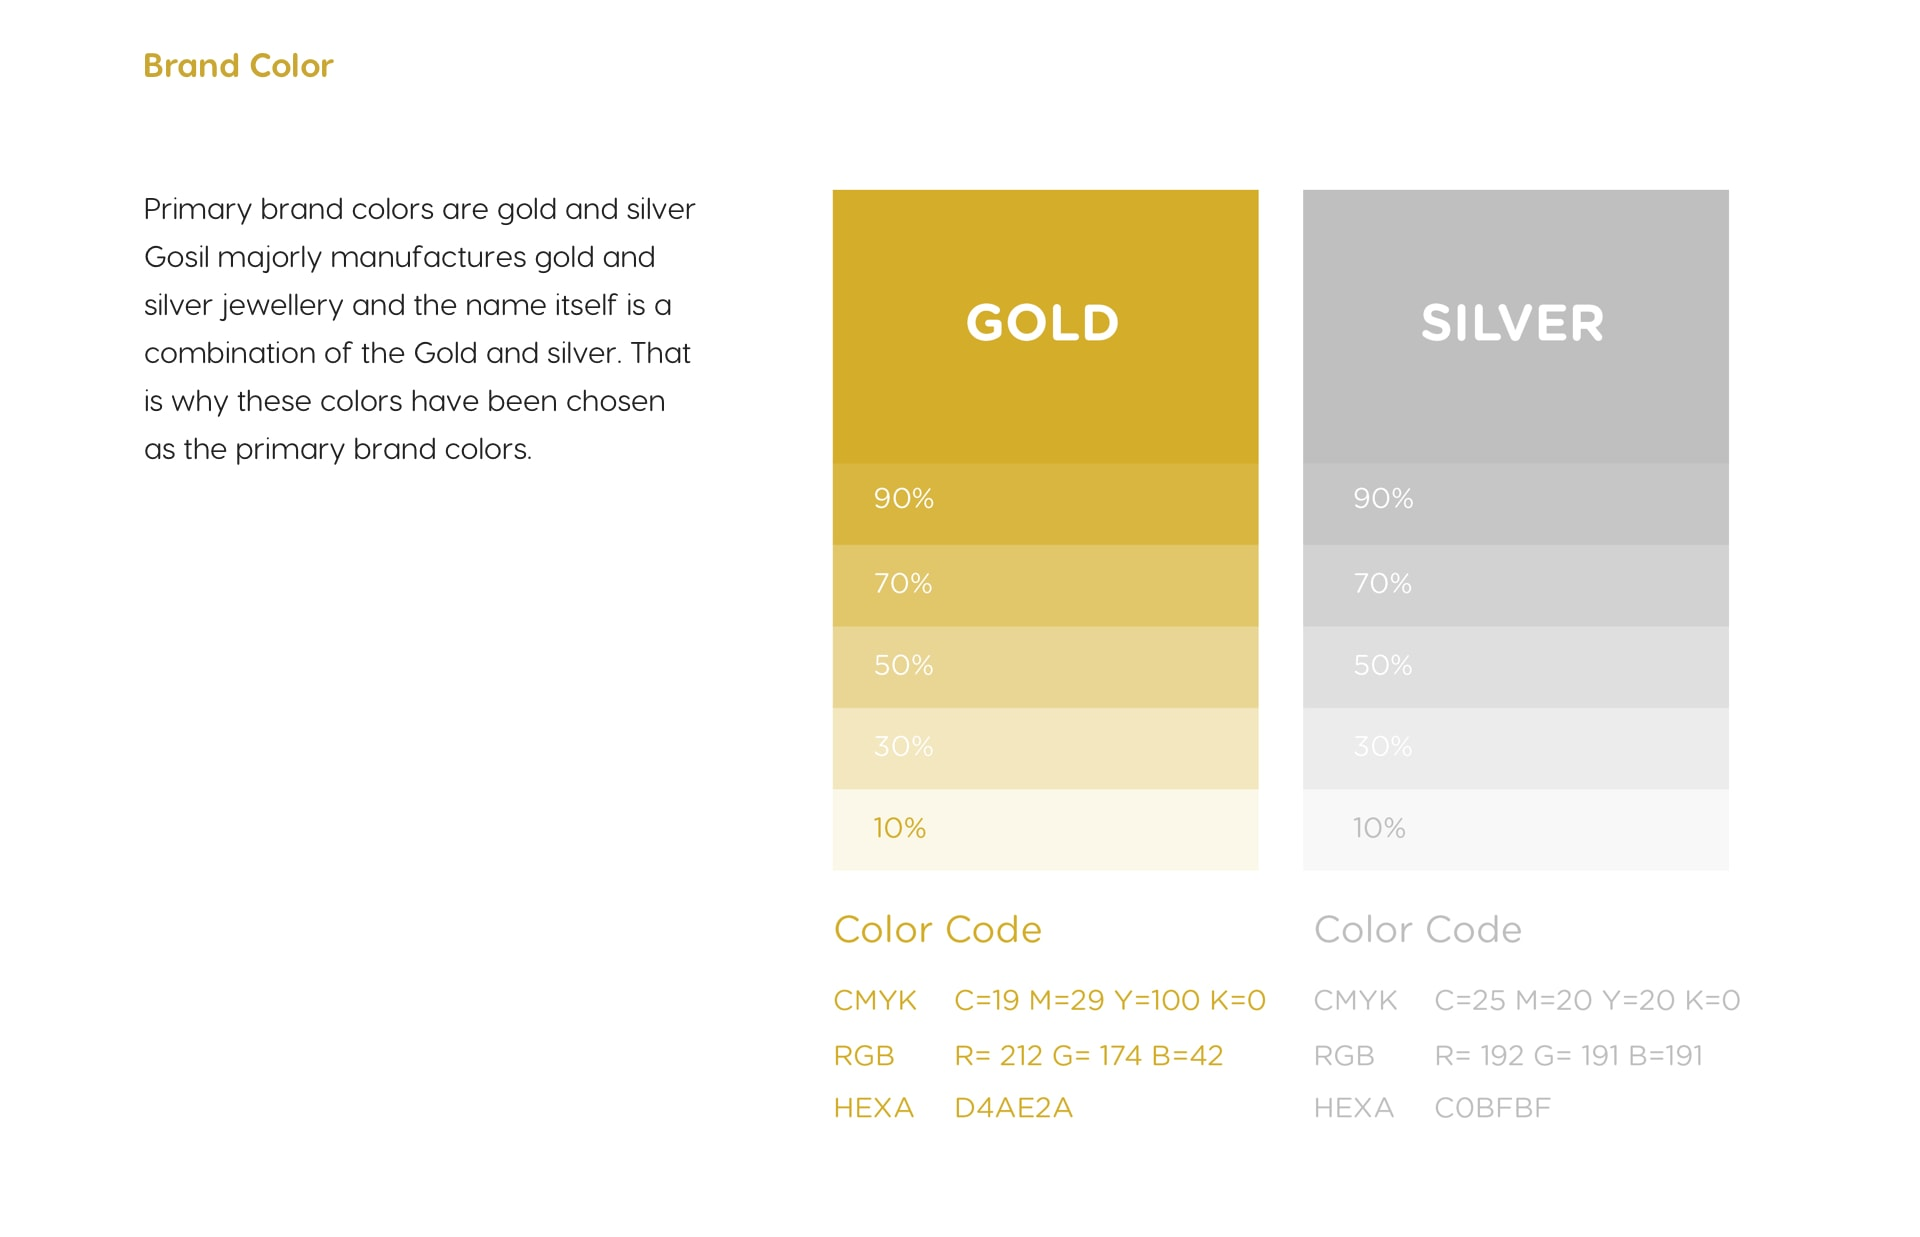 Brand color - Primary brand color are gold and silver Gosil majorly manufacture gold and silver jewellery and name itself is the combination of the gold and silver. That is why these colors have been chosen as the primary brand colors.